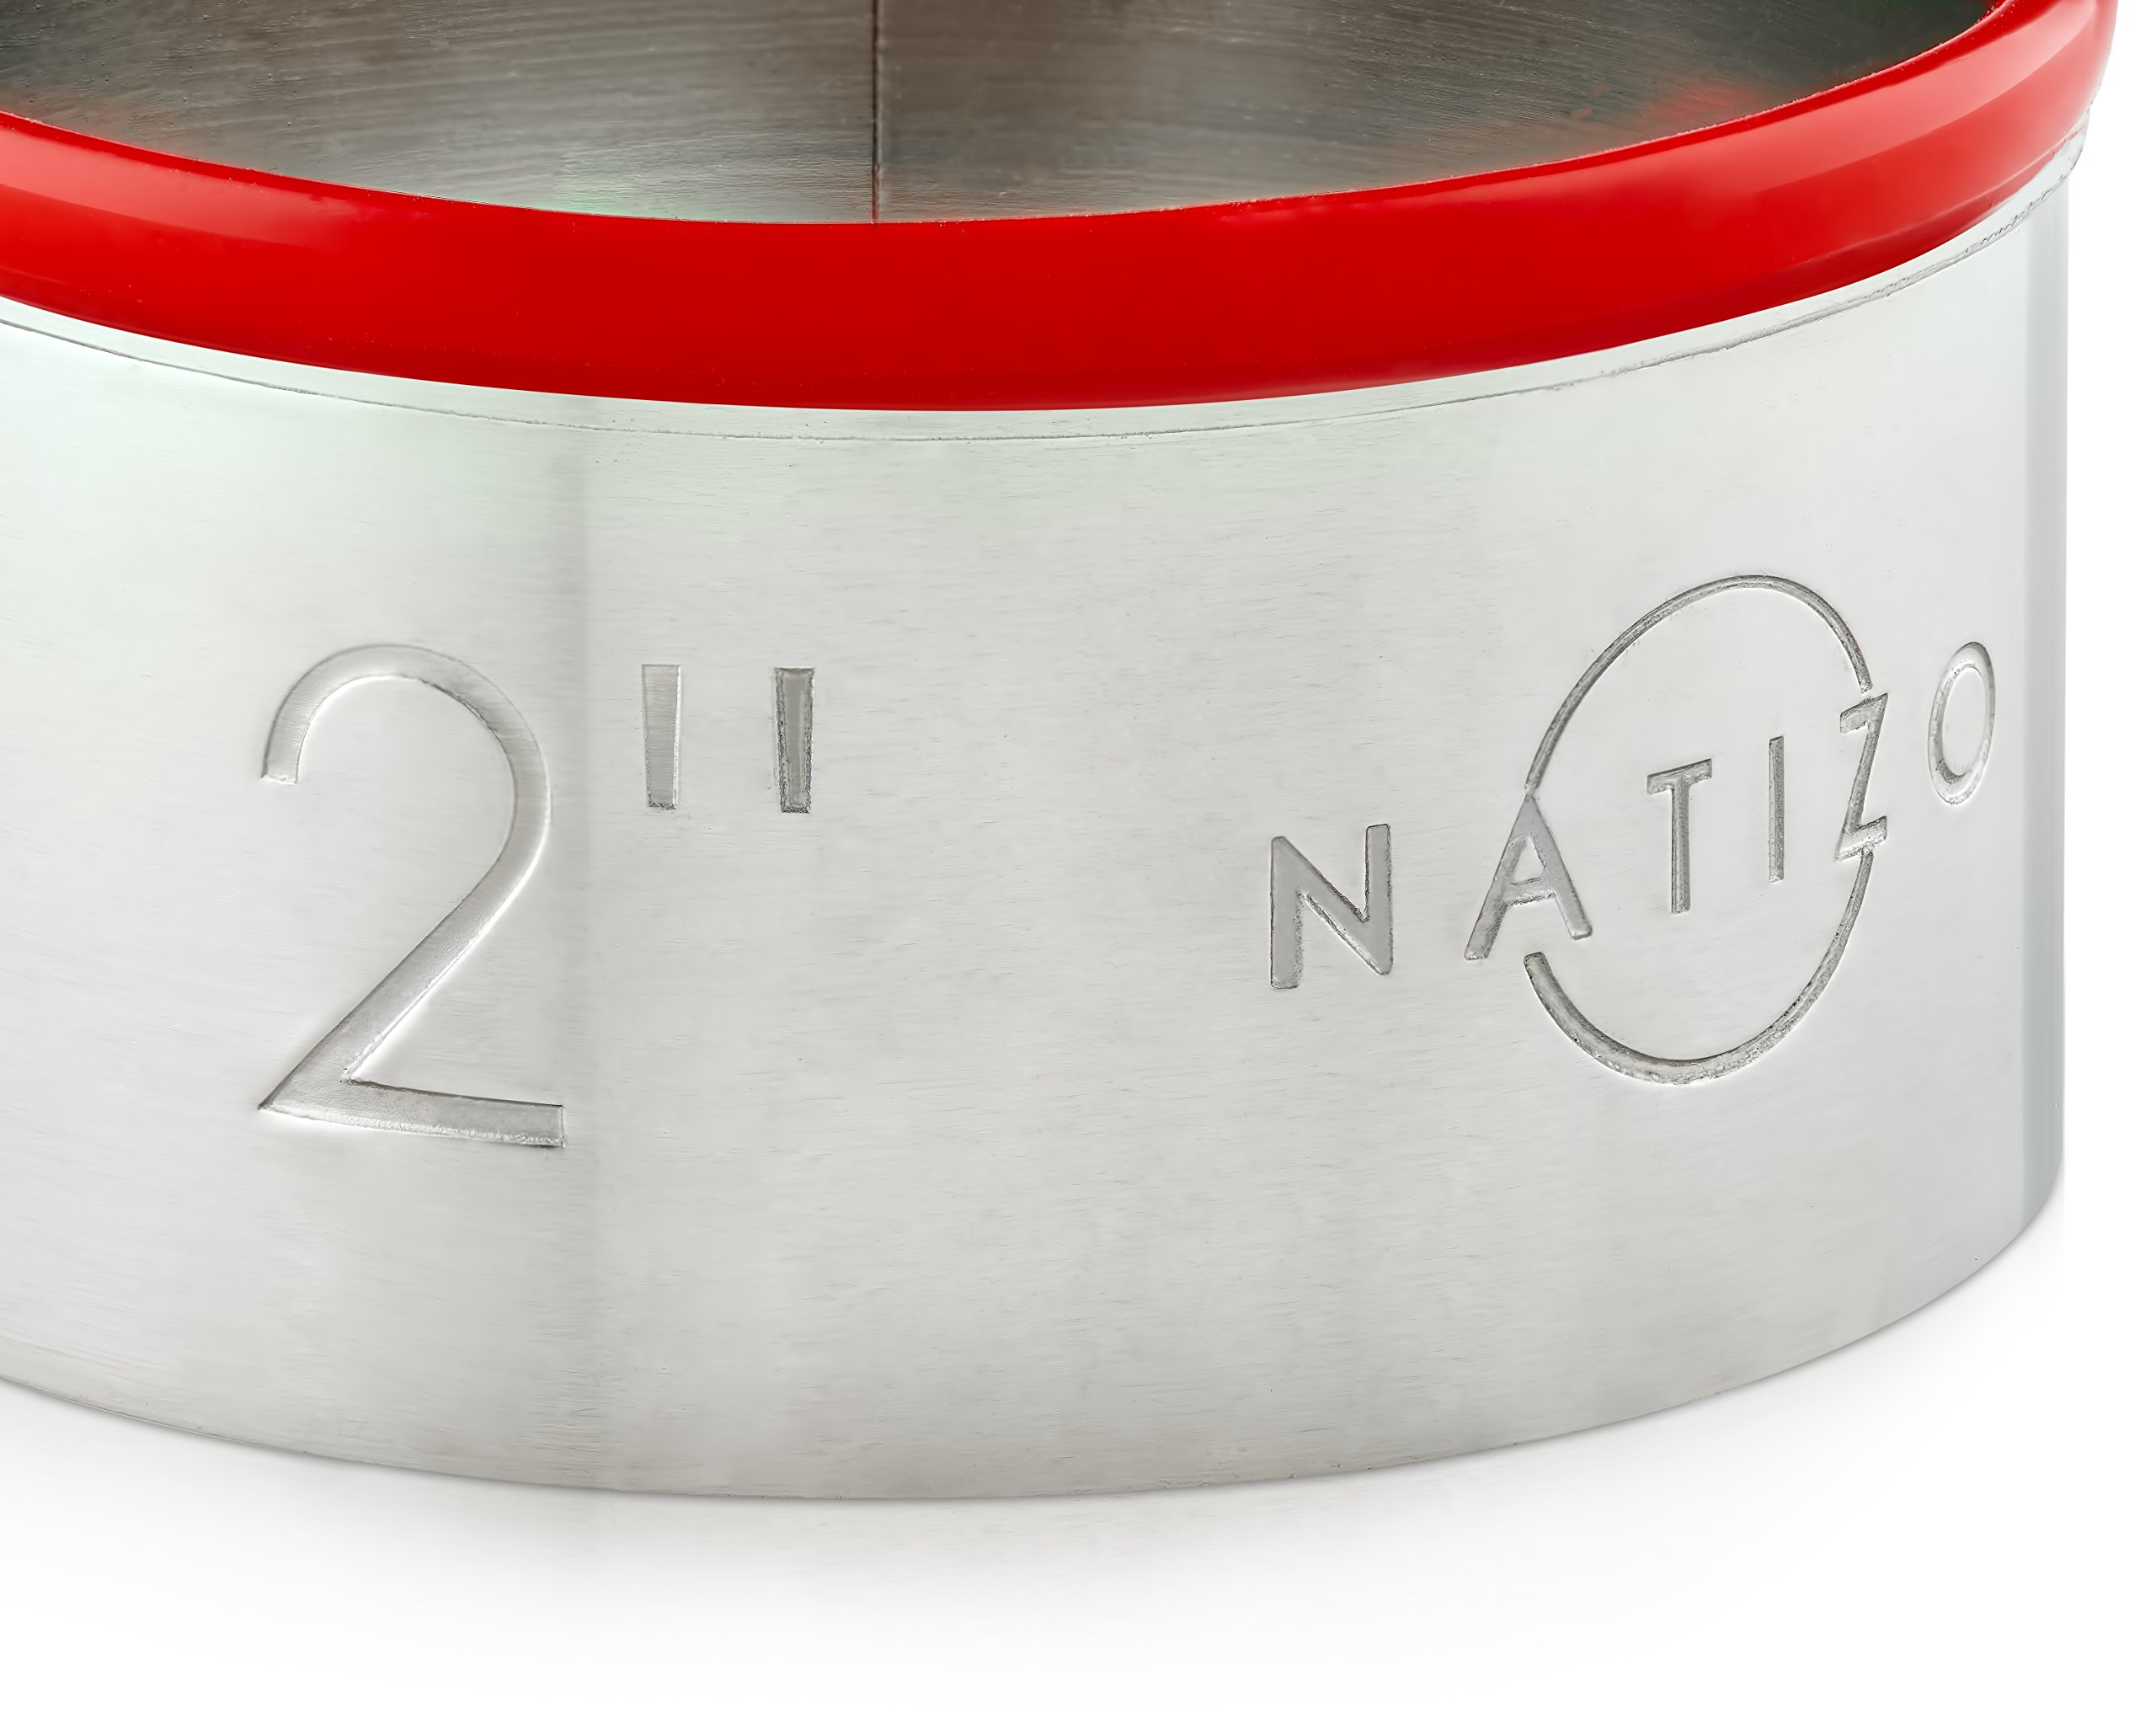 Natizo 12 Piece Round Stainless Steel Cookie Cutter Set - Size On Every Cutter - Silicone Tops by Natizo (Image #4)